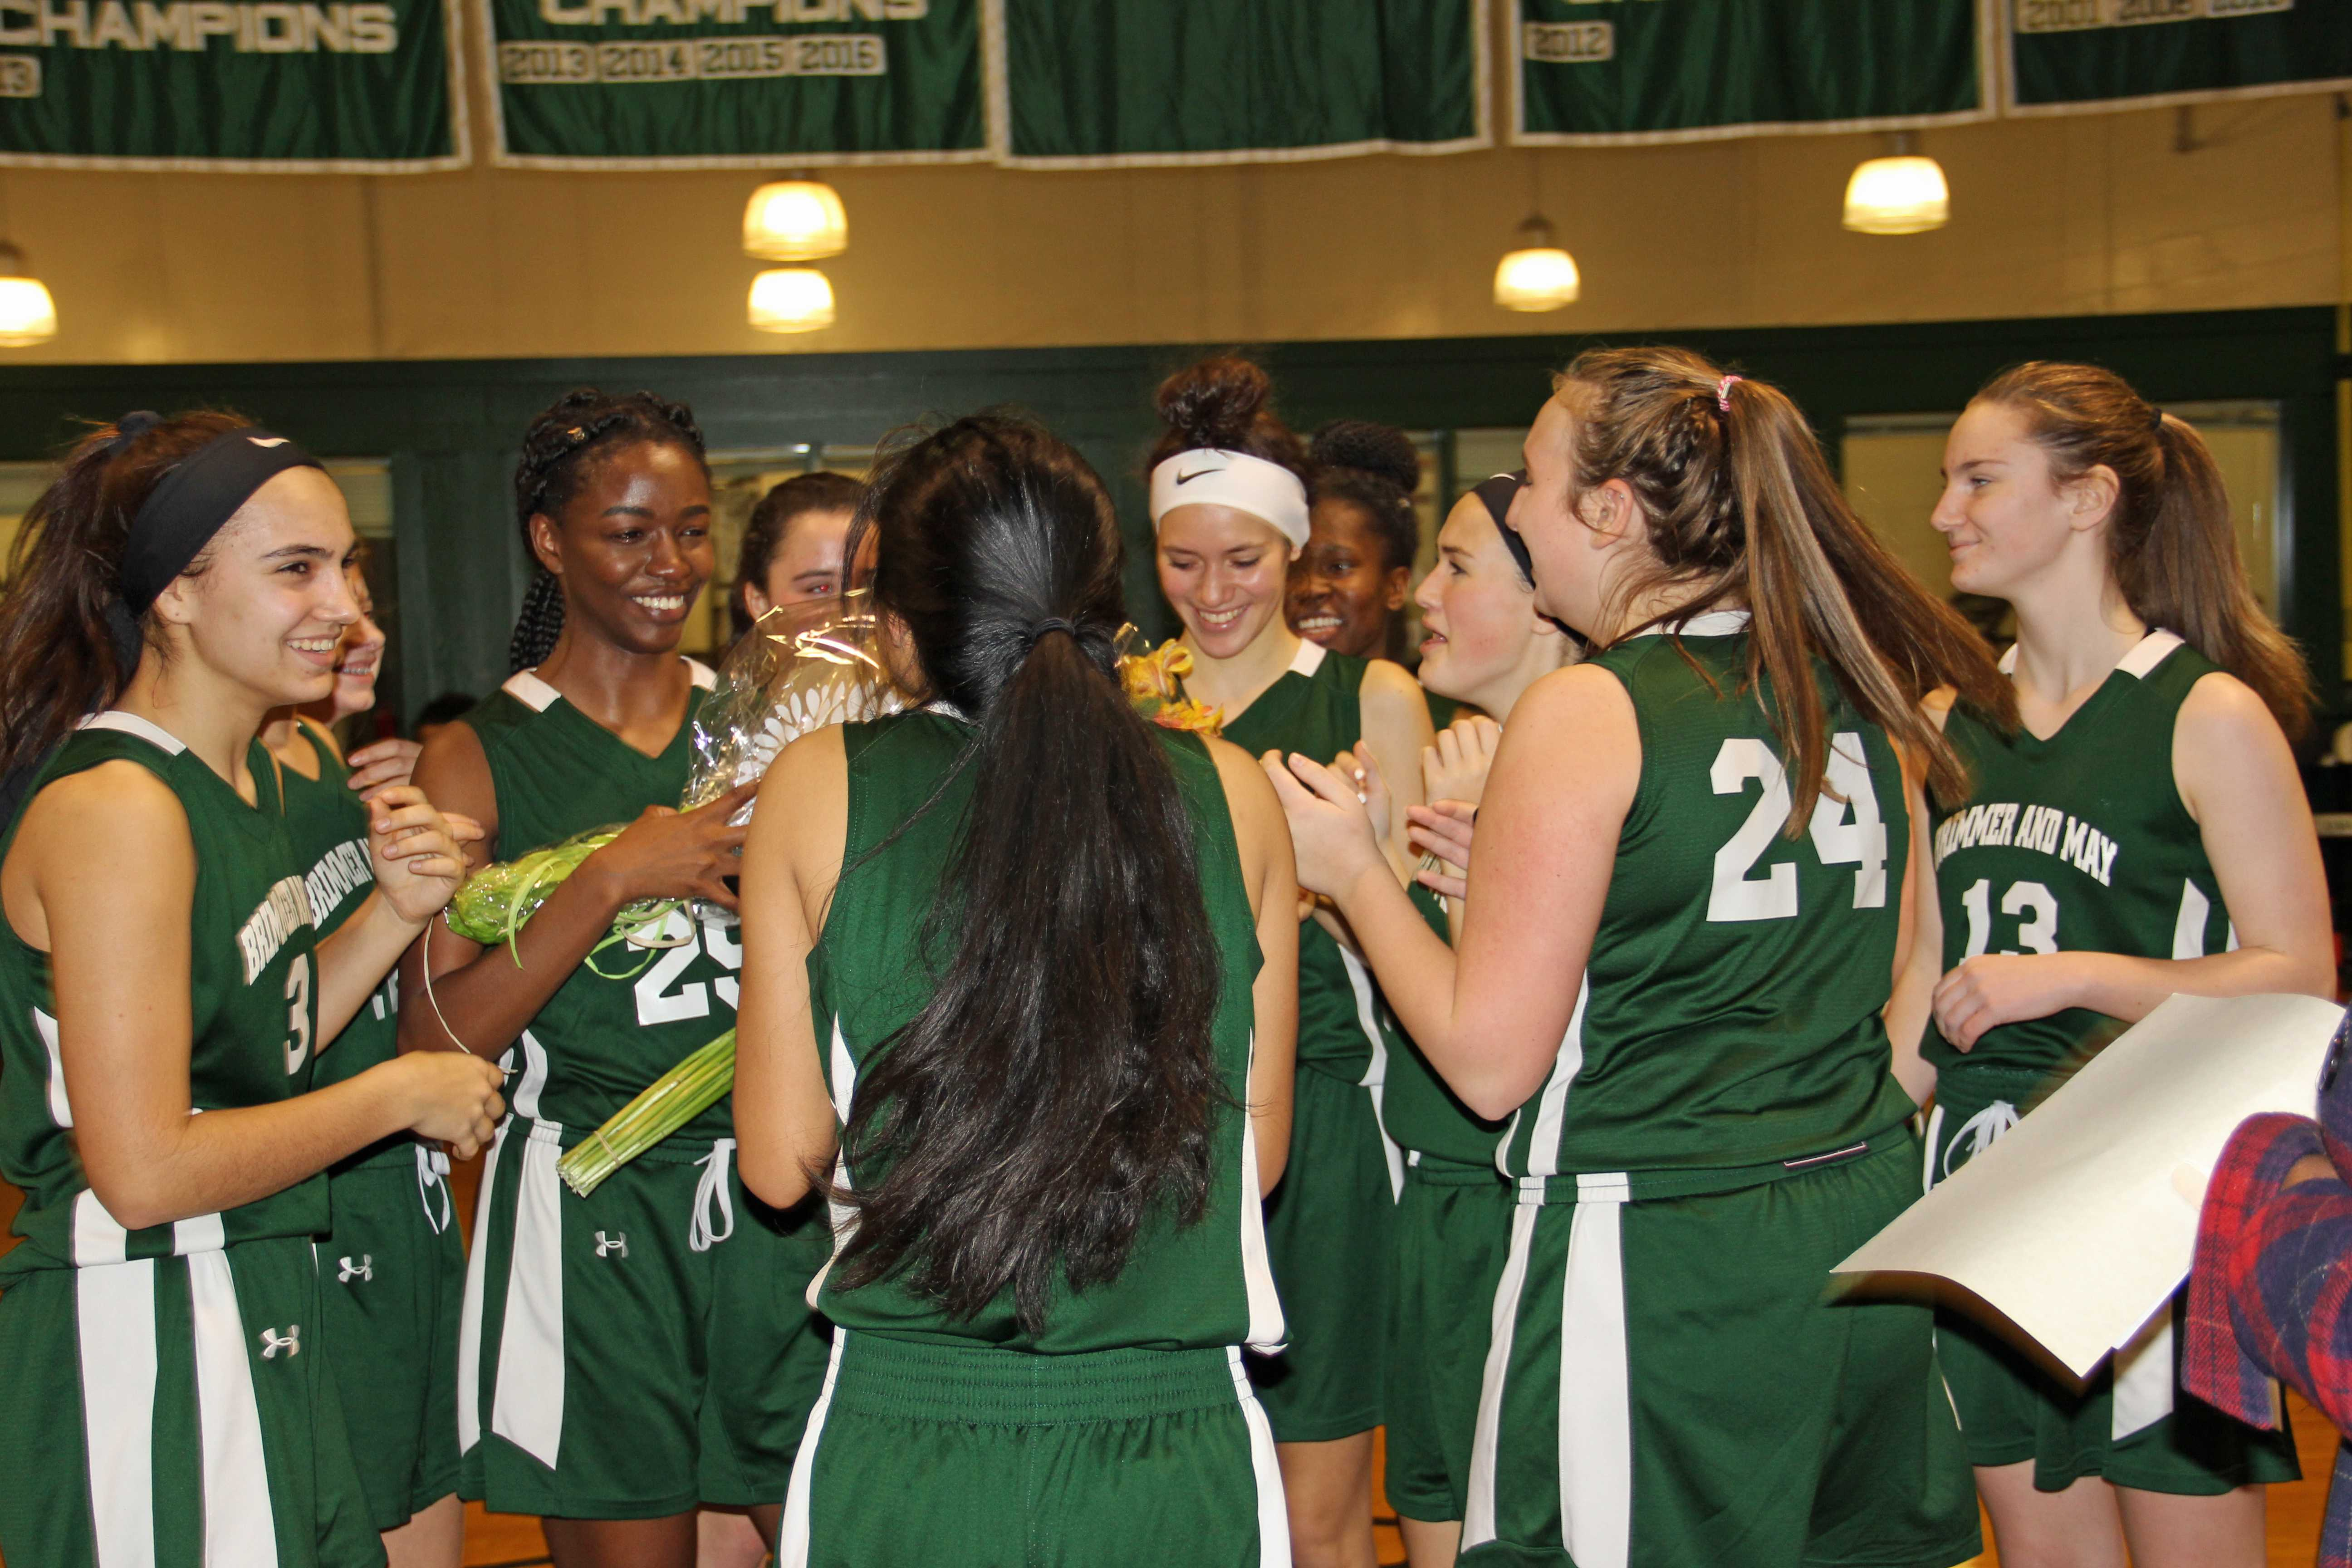 At her last home game, Amy Nwachukwu '18 celebrates with her team during halftime. Photo by David Cutler '02.